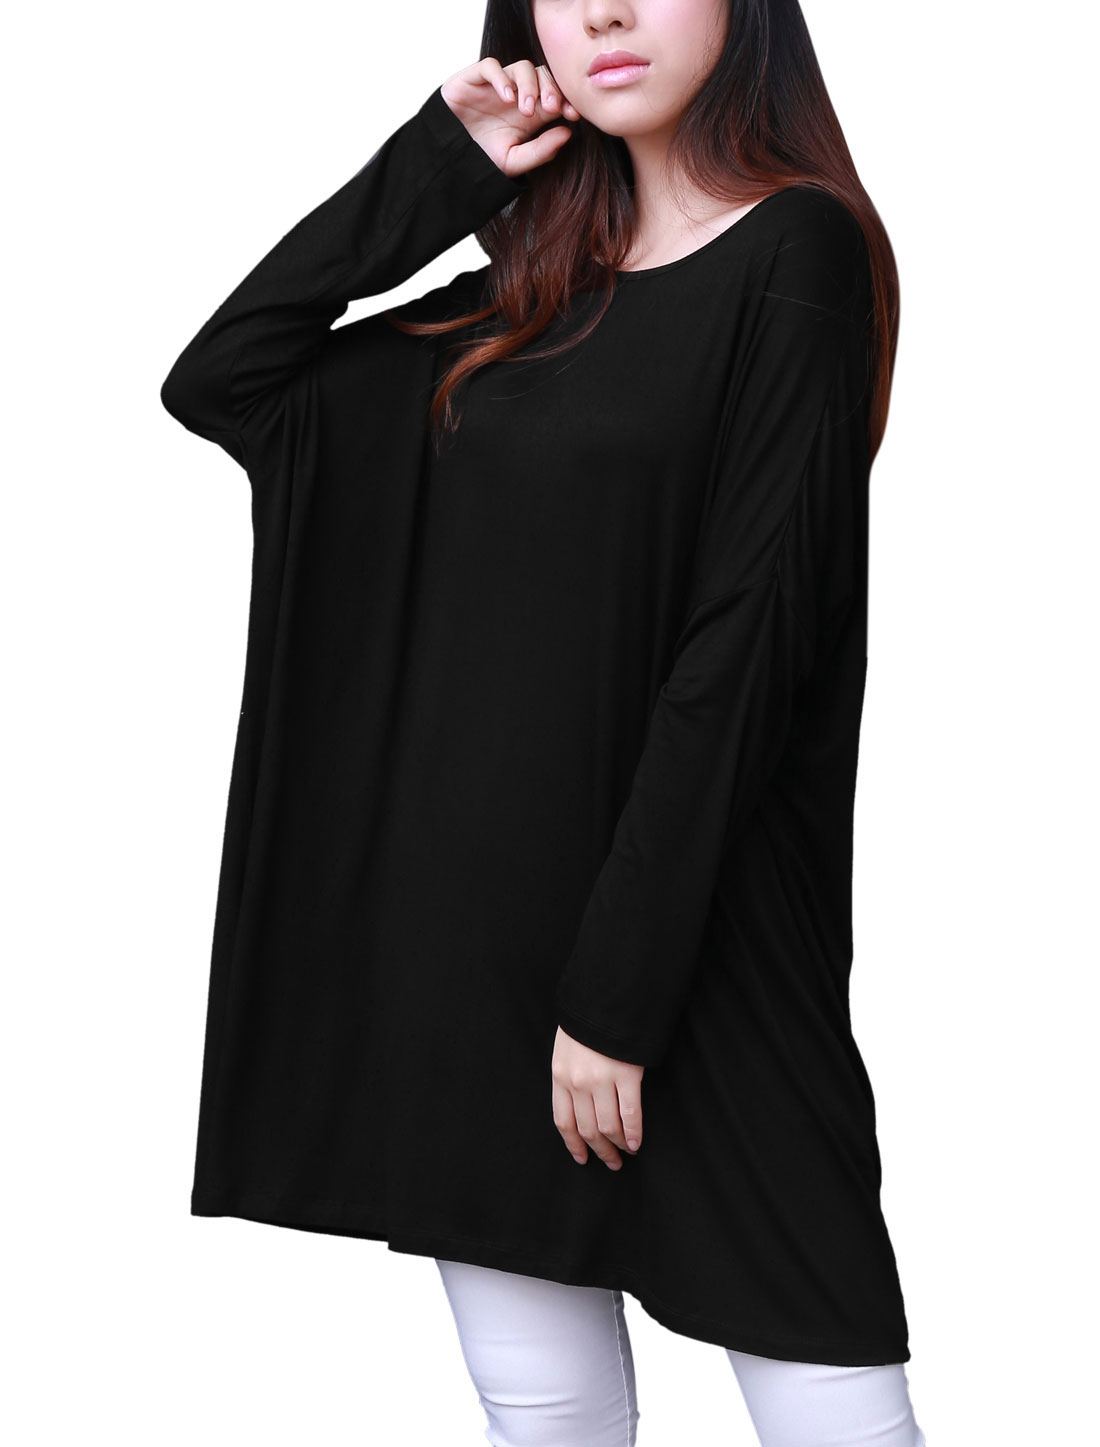 Ladies Korea Style Round Neck 3/4 Batwing Sleeve Black Casual Tops XS